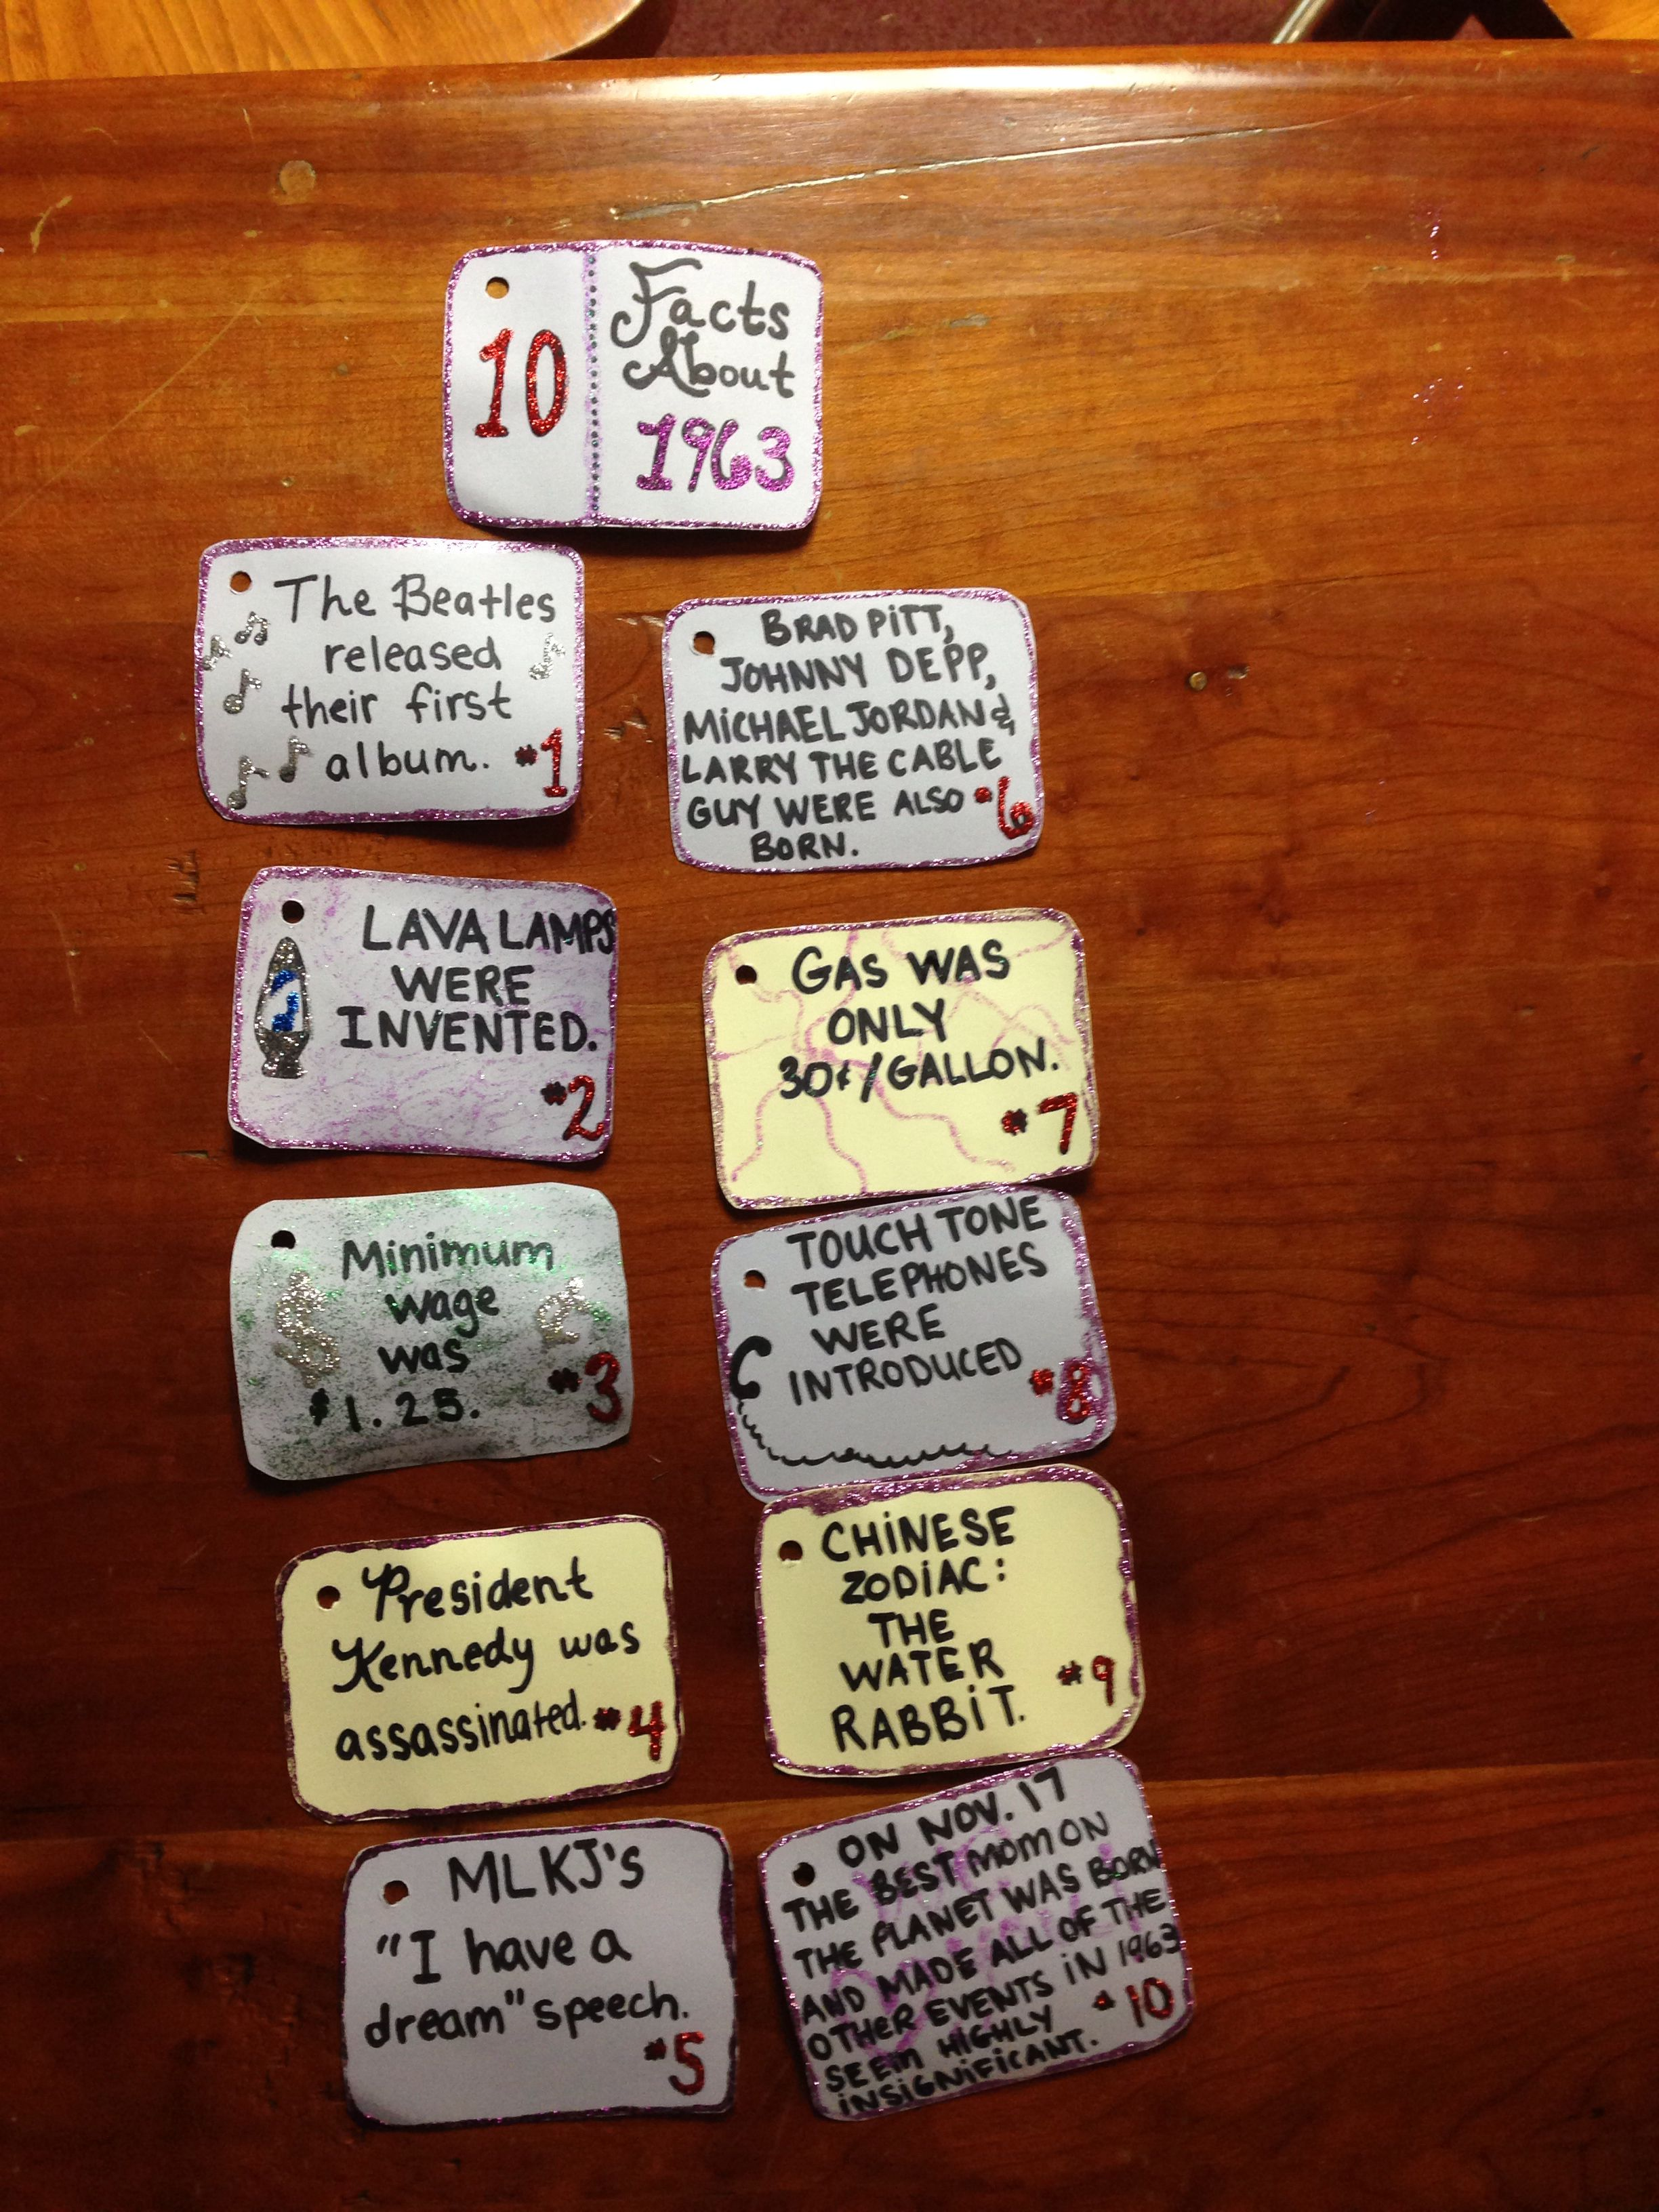 Moms 50th Birthday Present Facts About The Year She Was Born 1963 Followed By A Cute